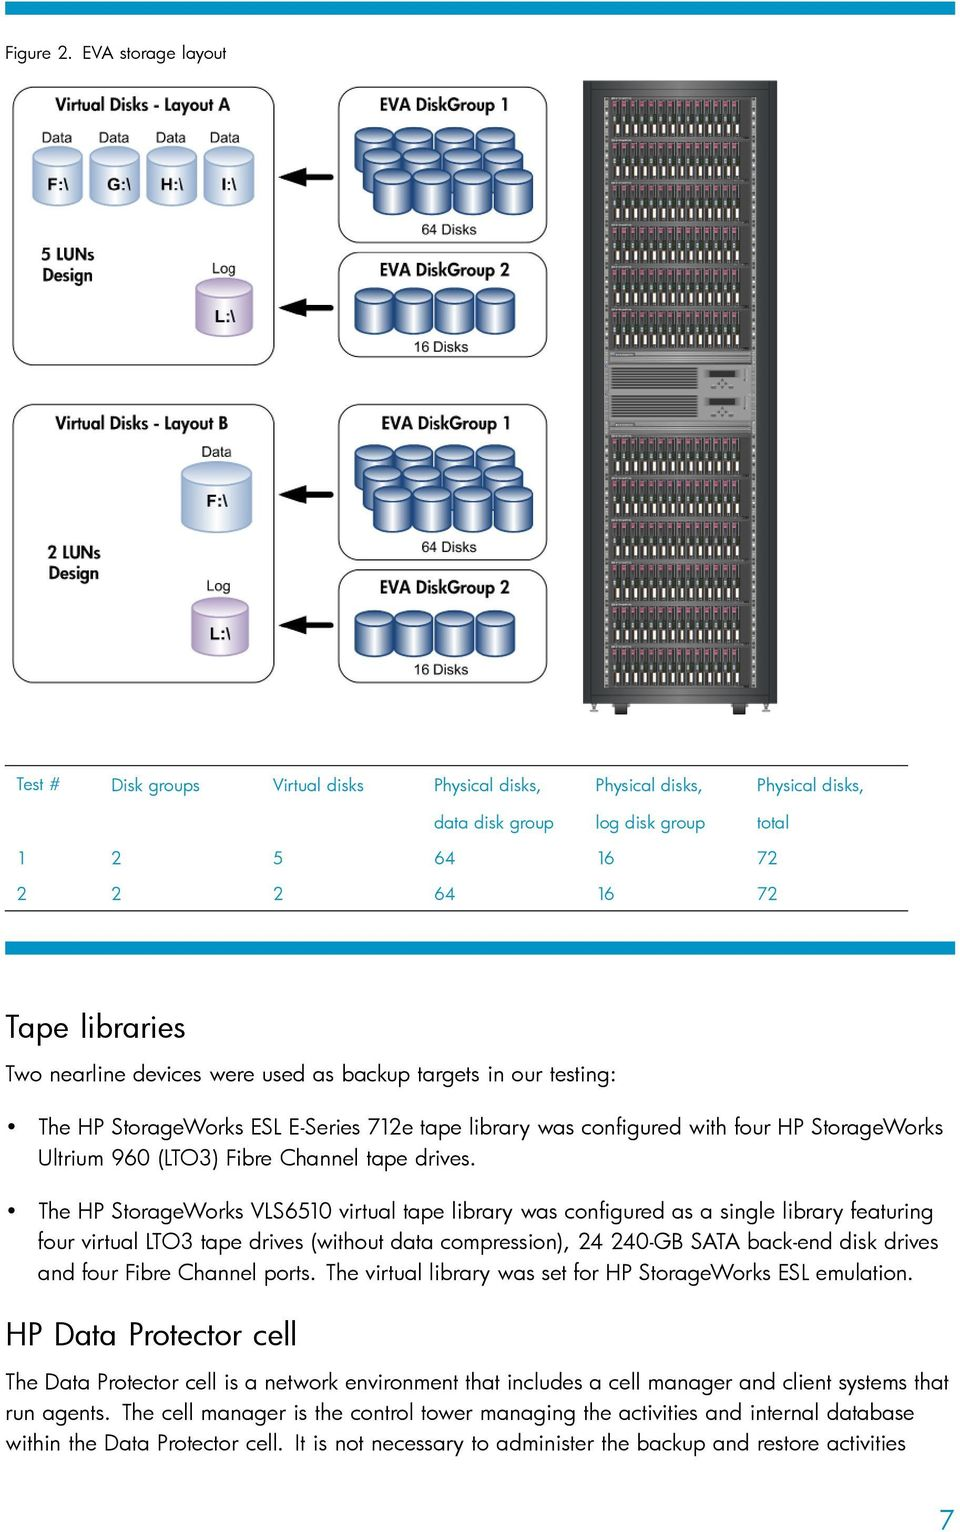 devices were used as backup targets in our testing: The HP StorageWorks ESL E-Series 712e tape library was configured with four HP StorageWorks Ultrium 960 (LTO3) Fibre Channel tape drives.